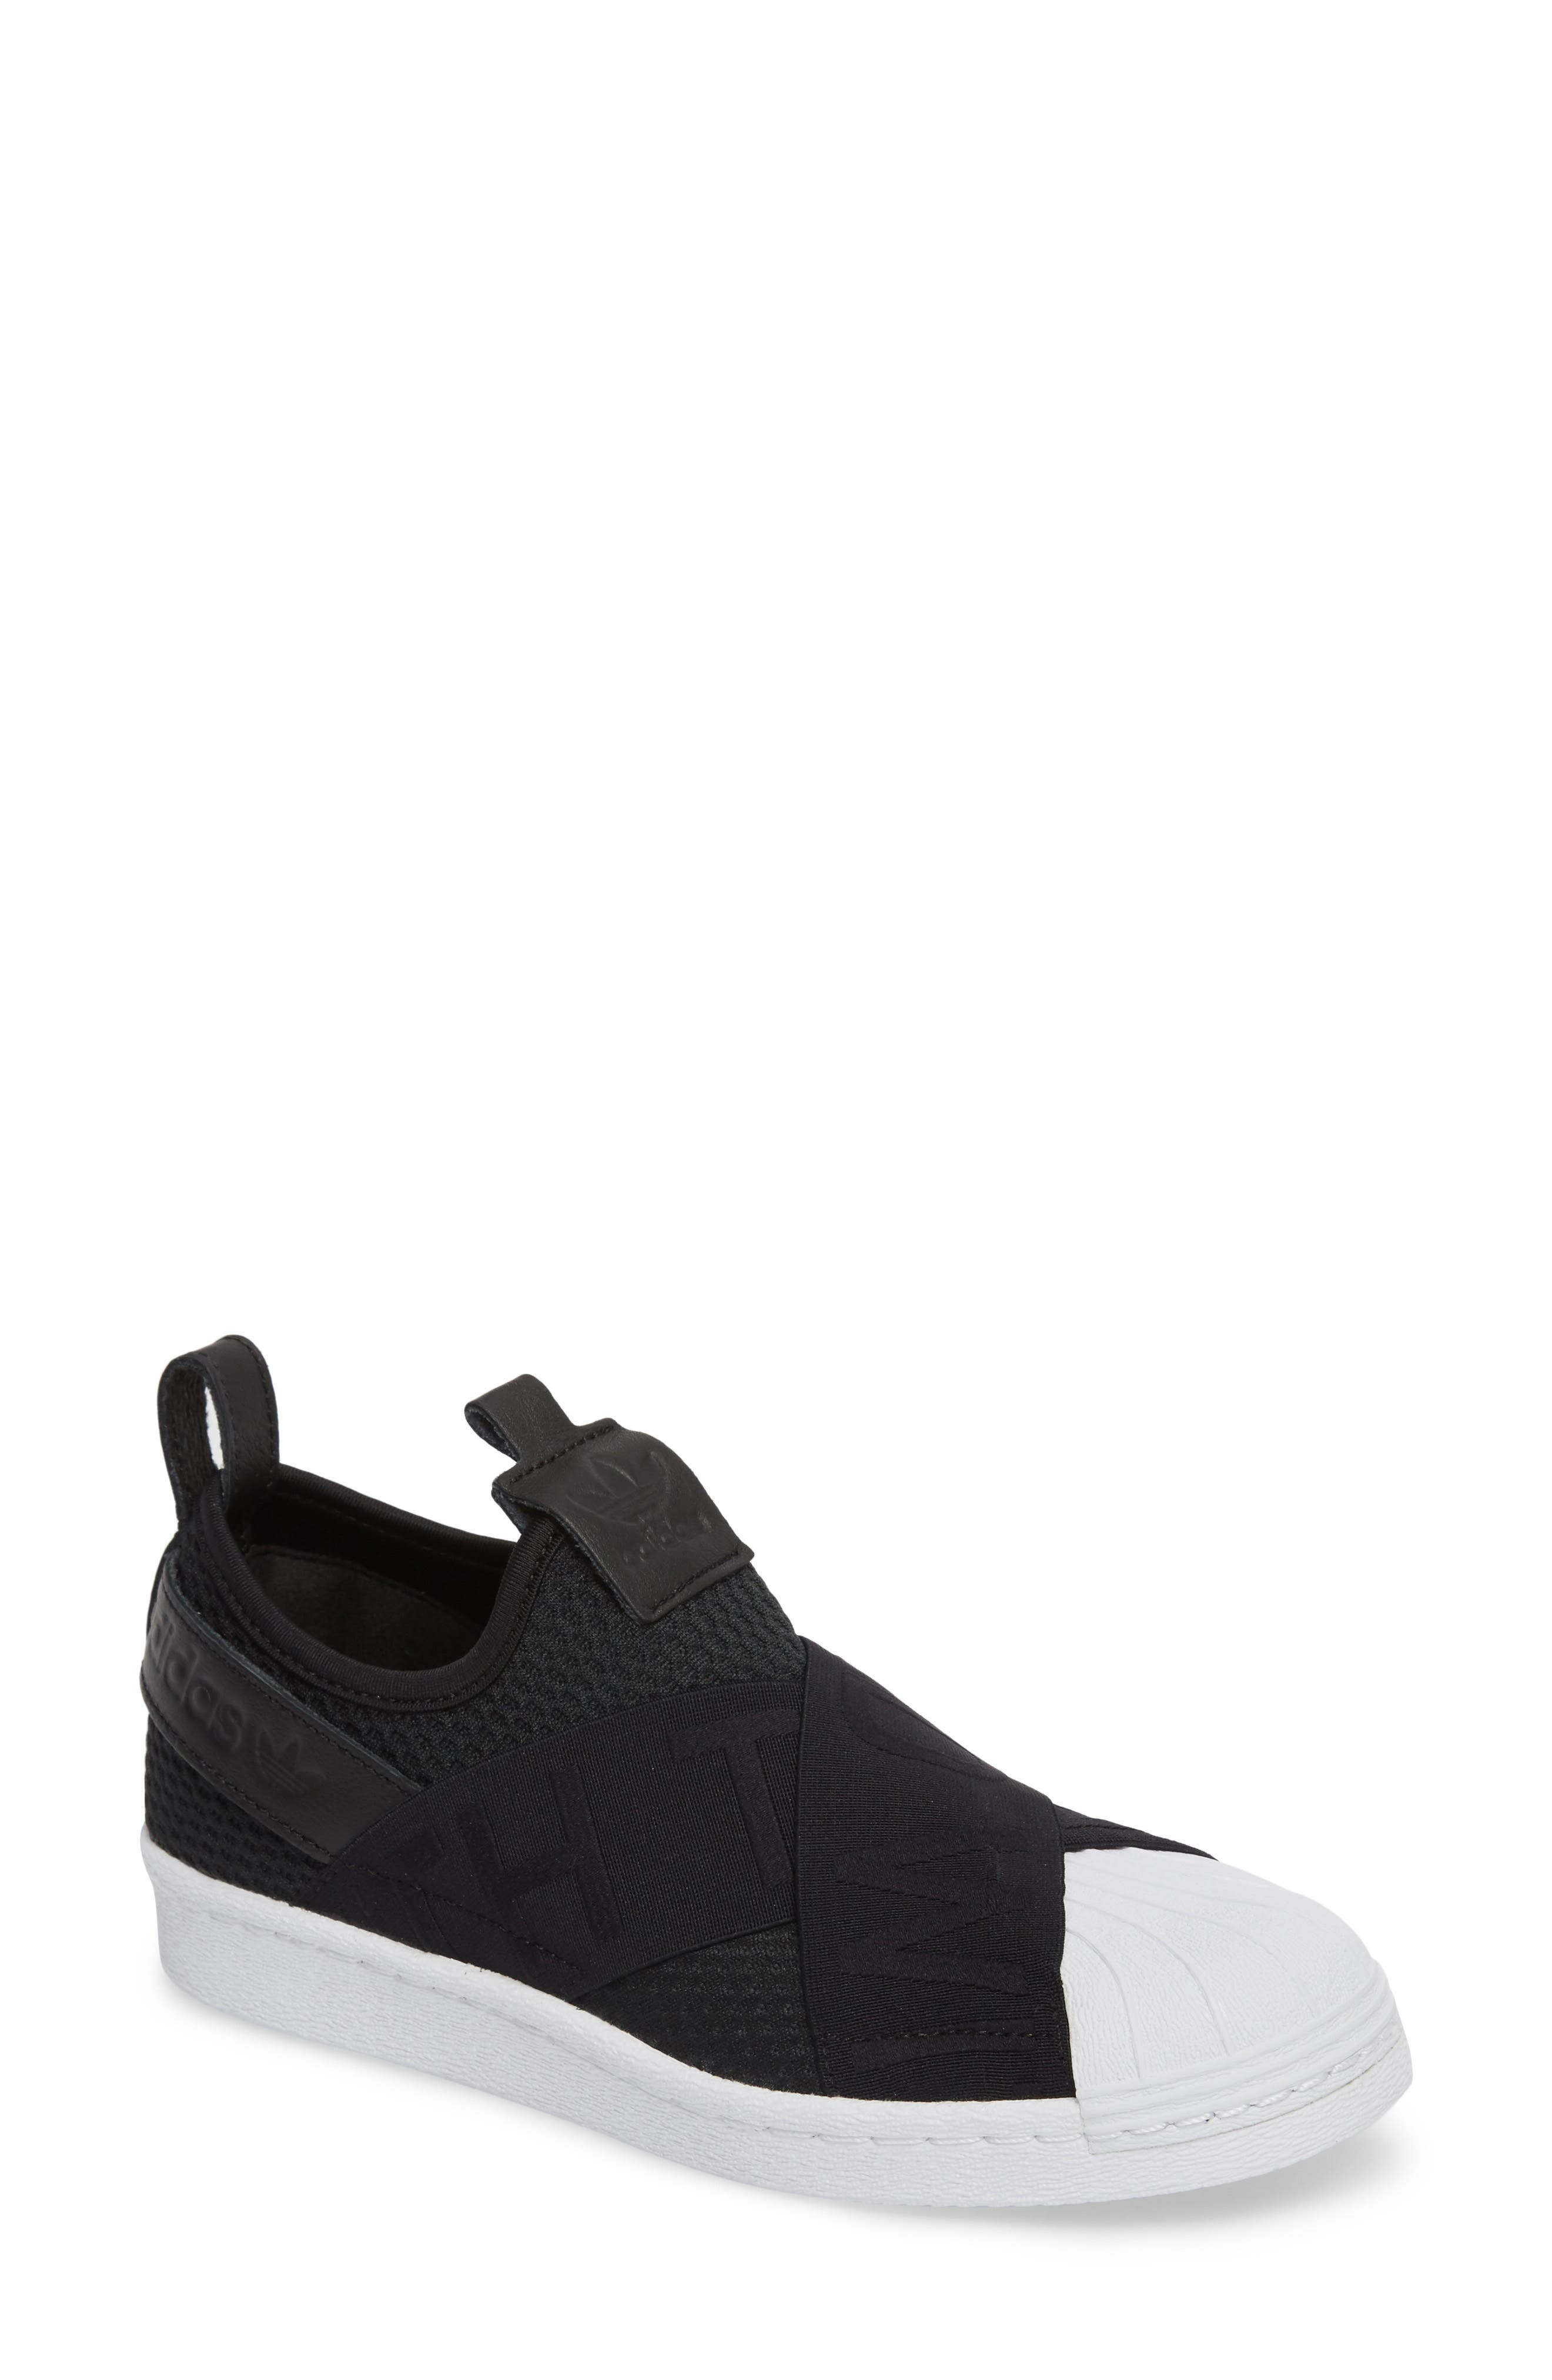 Superstar Slip-On Sneaker,                             Main thumbnail 1, color,                             003